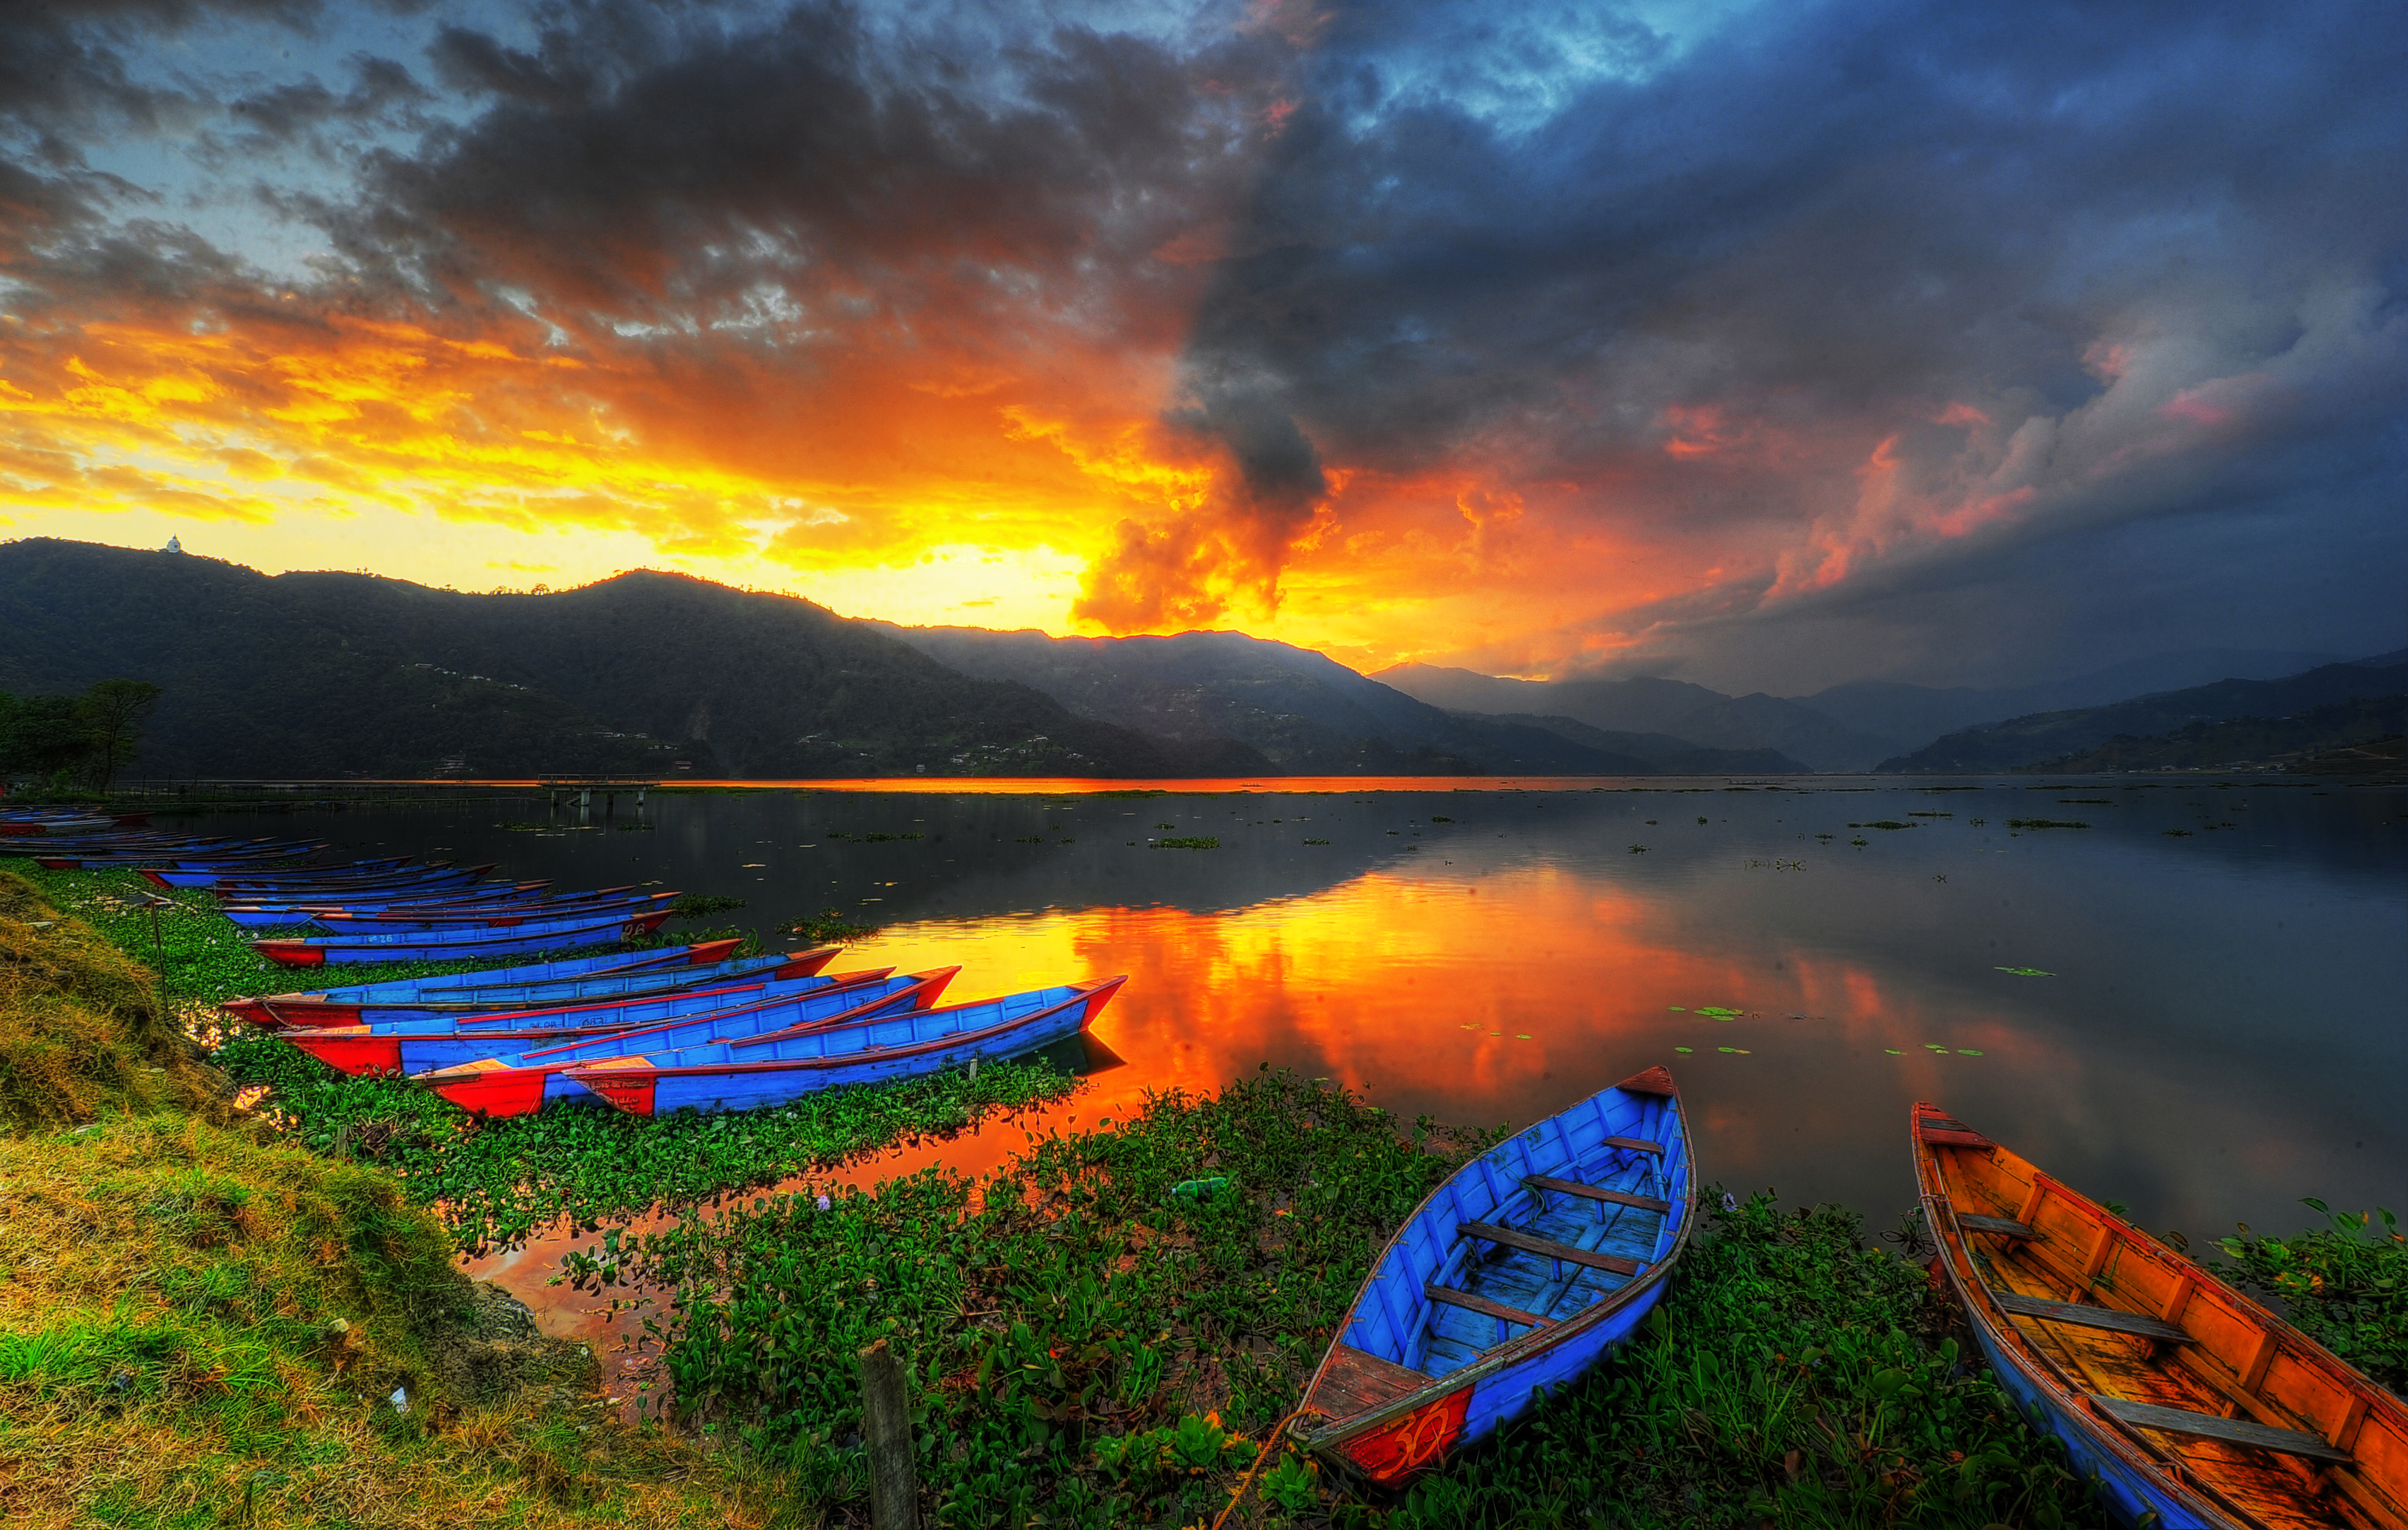 Pokhara- The City of Lakes